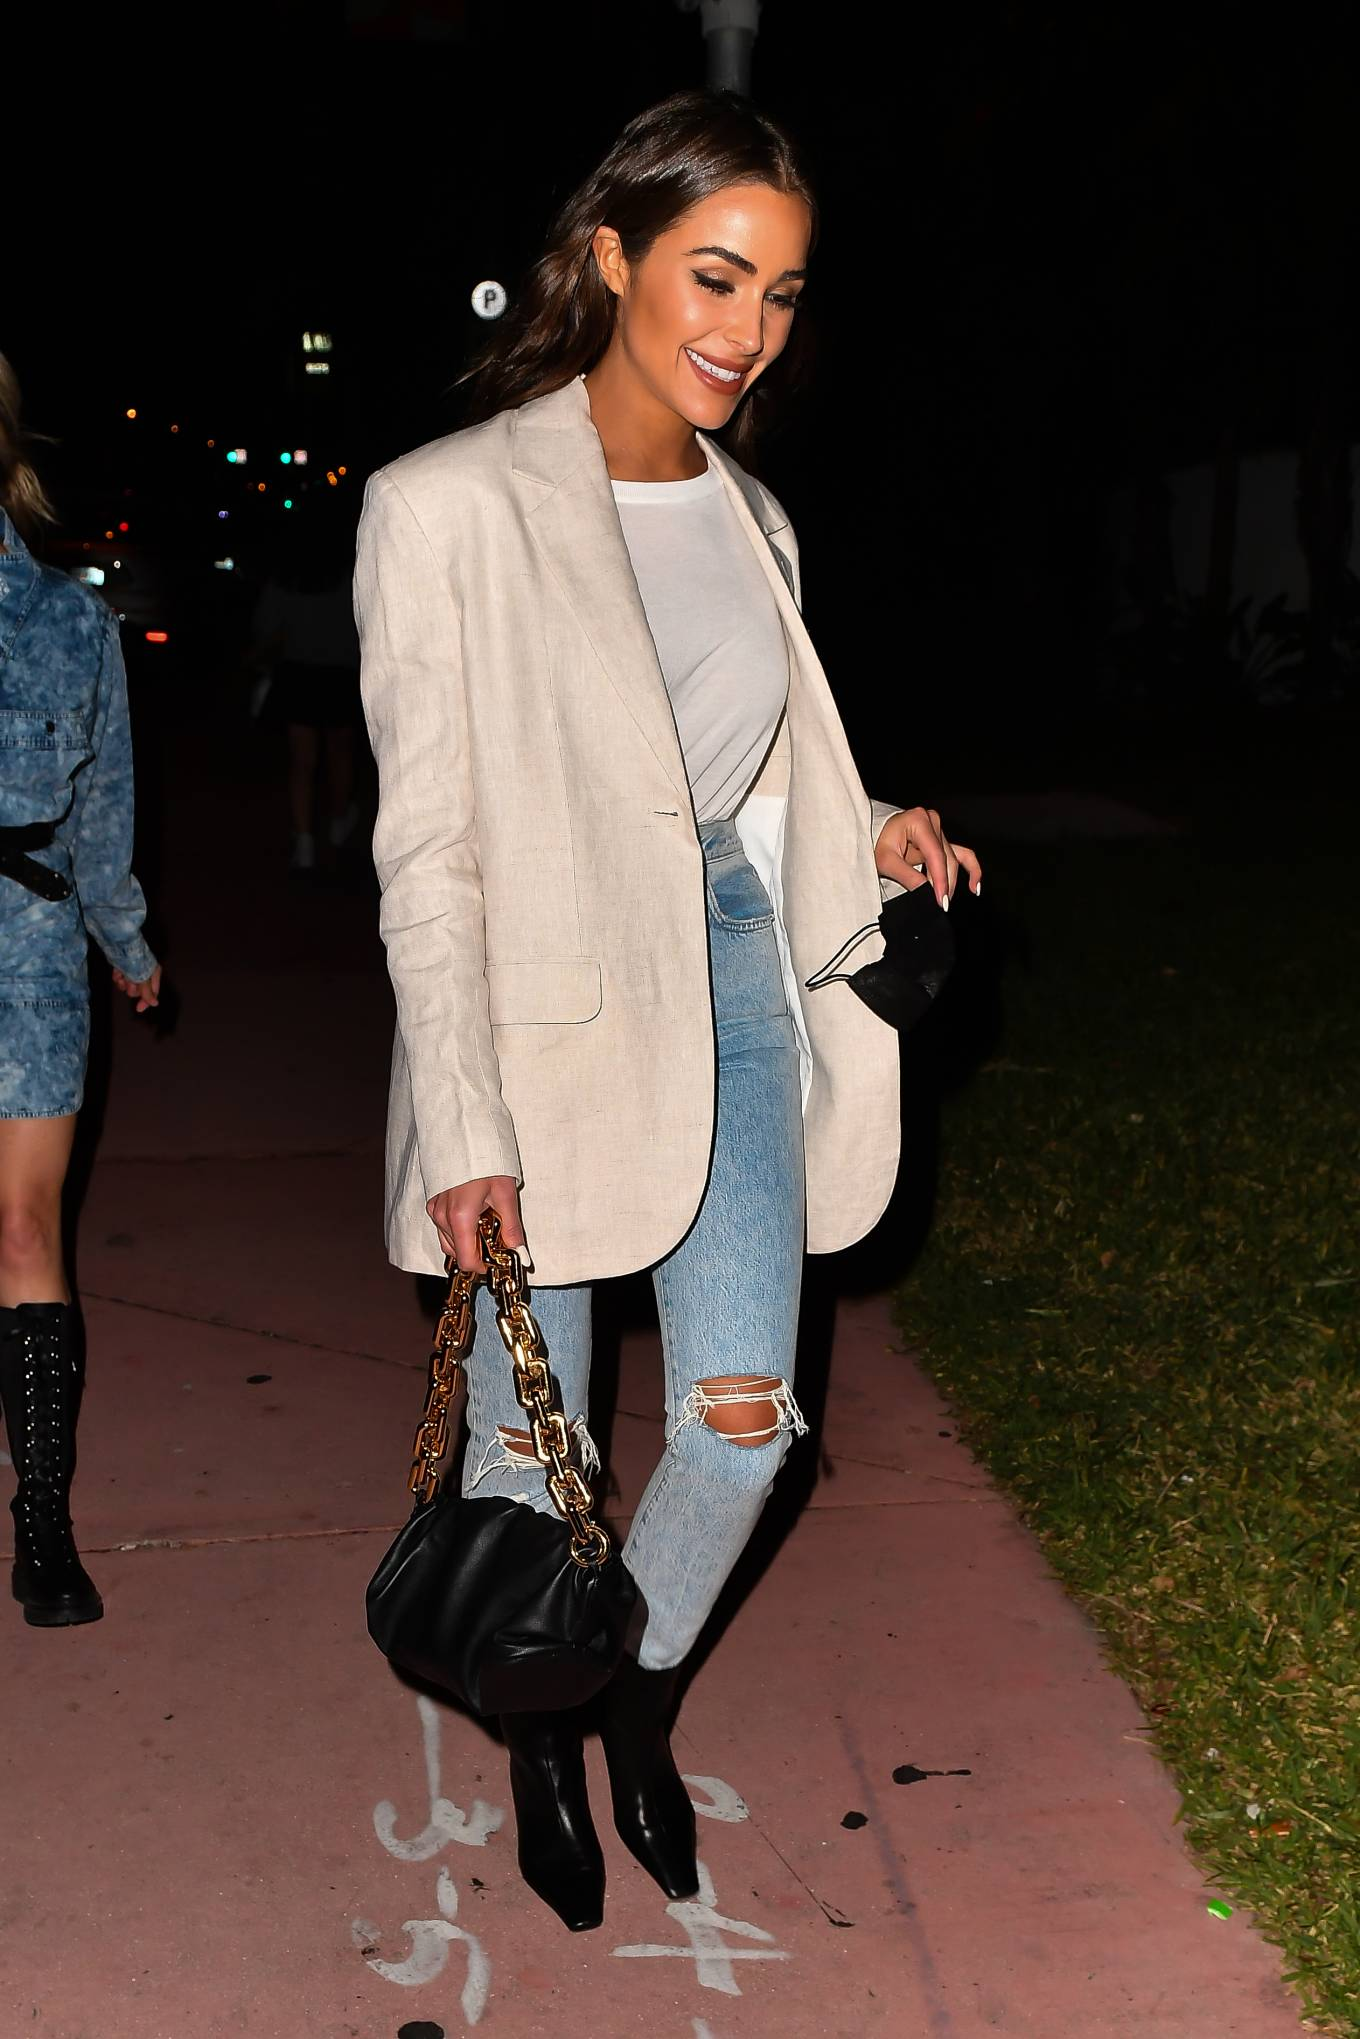 Olivia Culpo wearing narrow black leather ankle boots